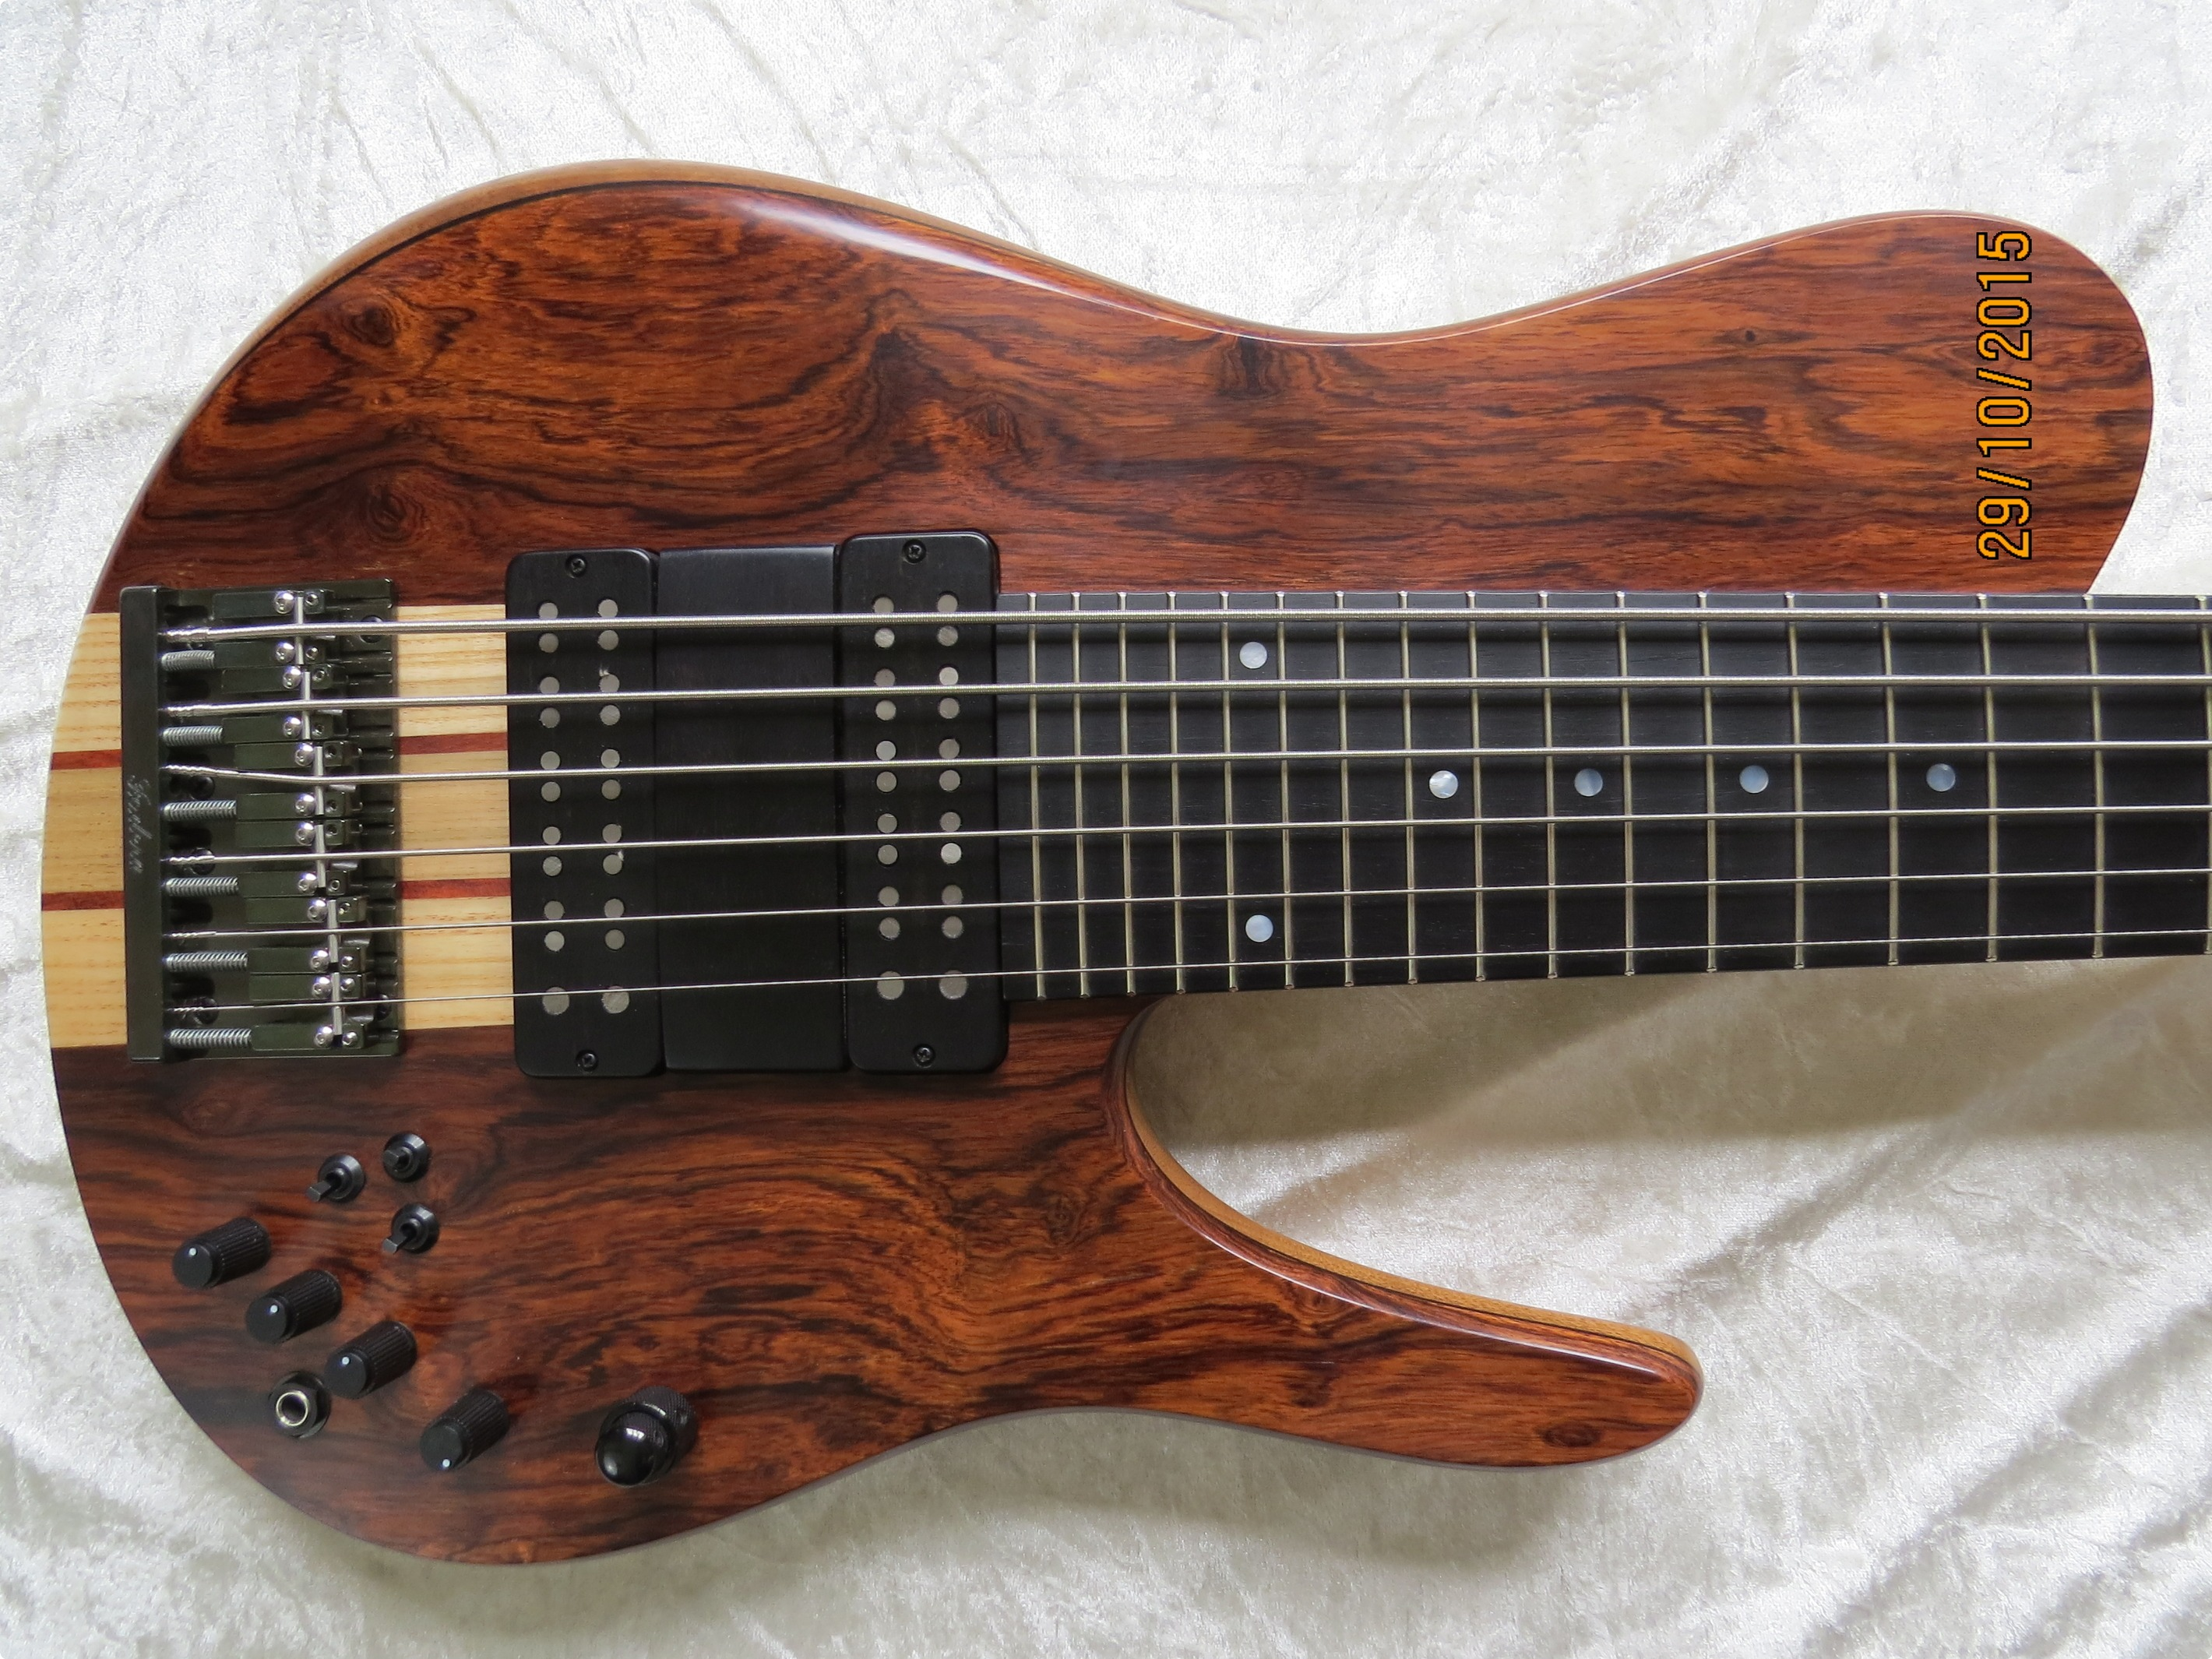 Fodera Bass For Sale : fodera imperial elite mg shape 2012 natural bass for sale cotswold bass guitars ~ Vivirlamusica.com Haus und Dekorationen